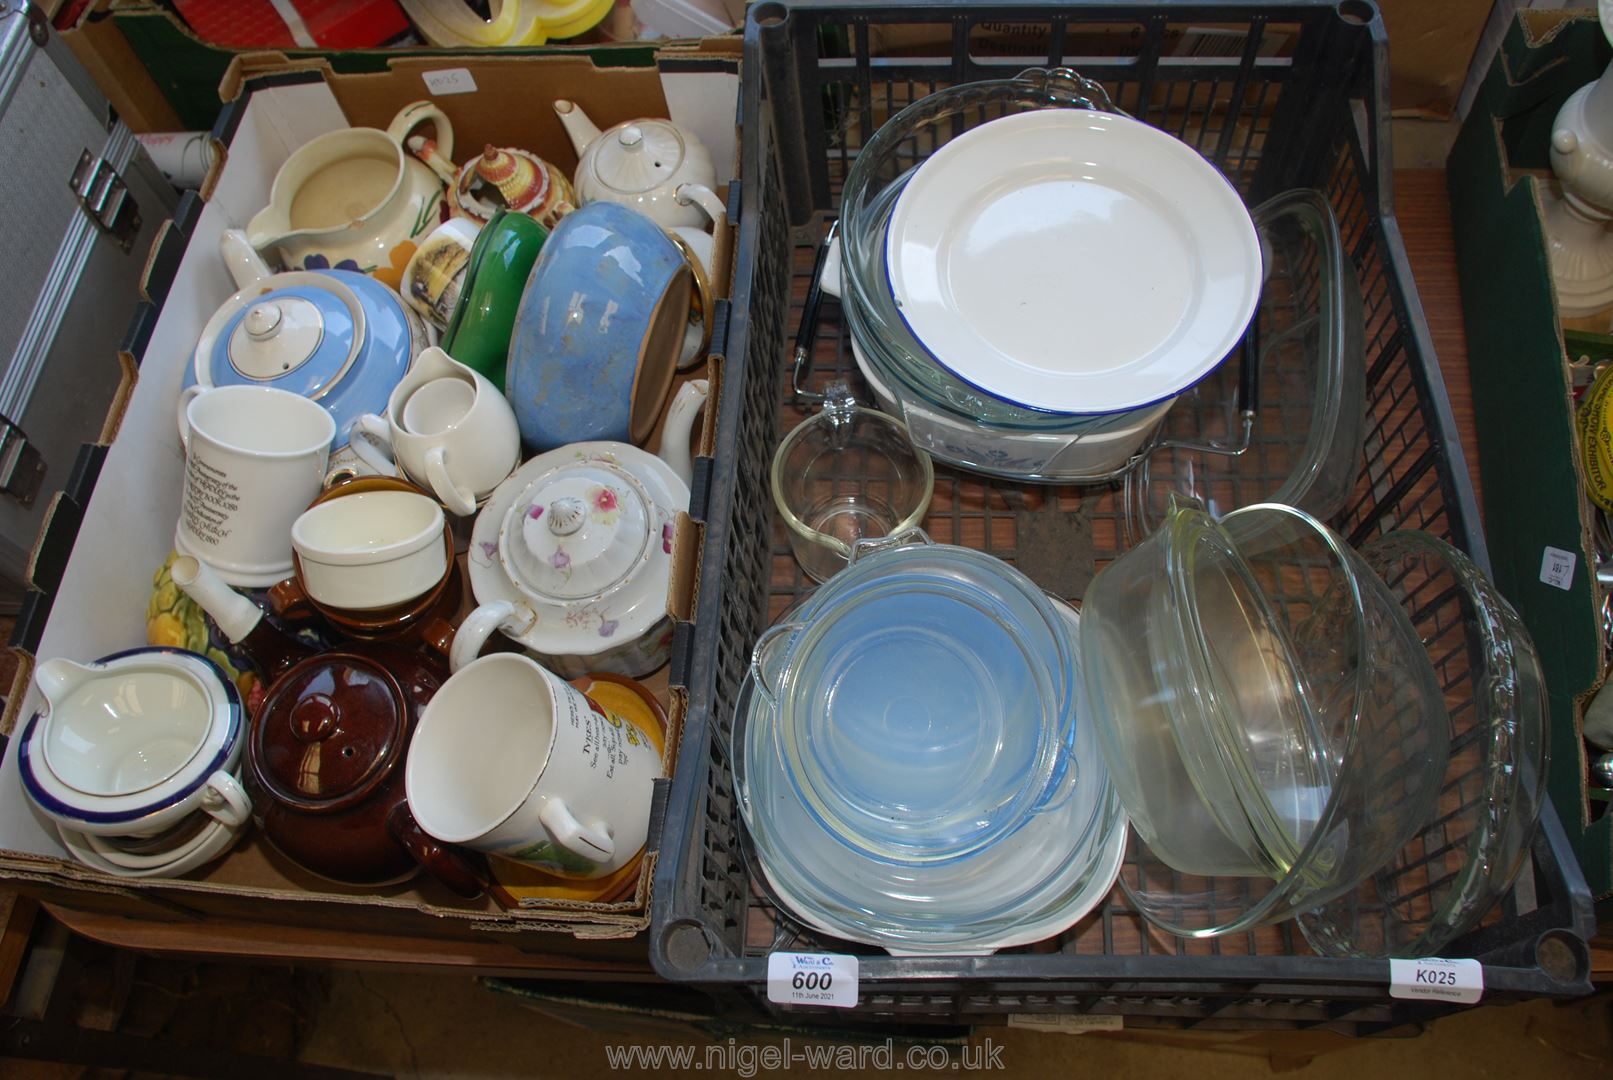 A box of various teapots, mugs and a crate of kitchen glassware.